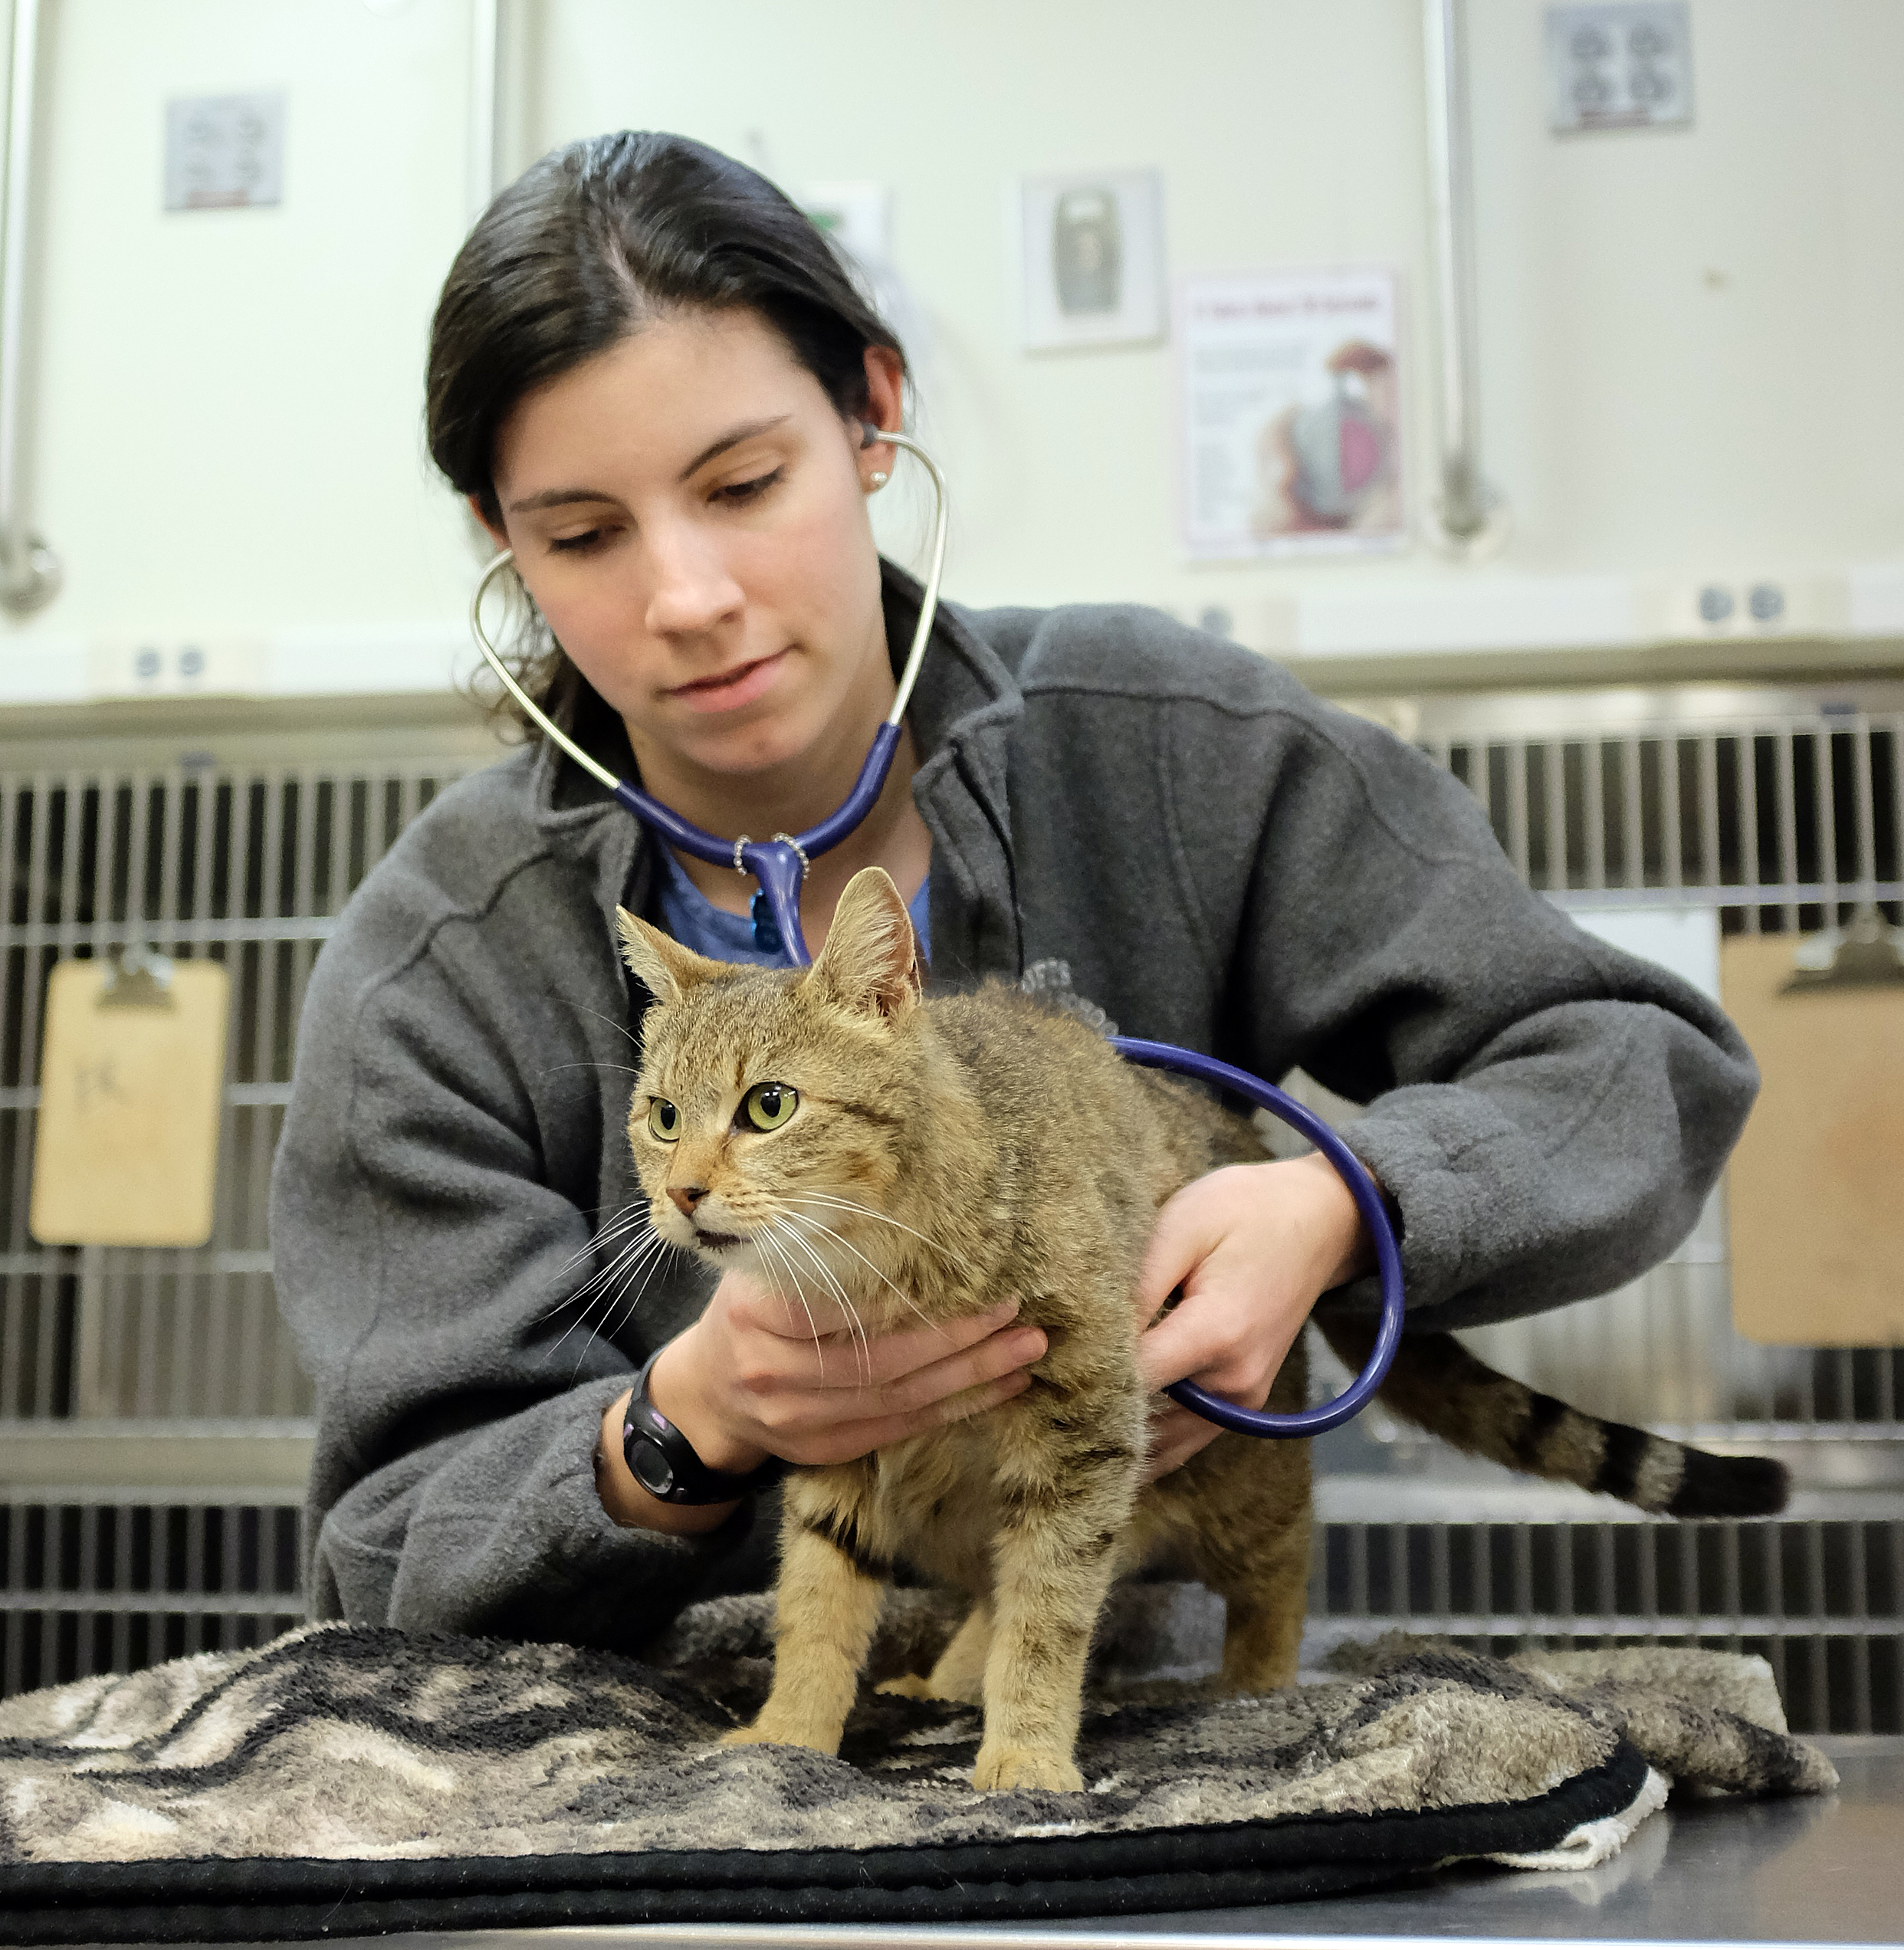 Administration of Pimobendan to Cats with Chronic Kidney Disease (CKD)